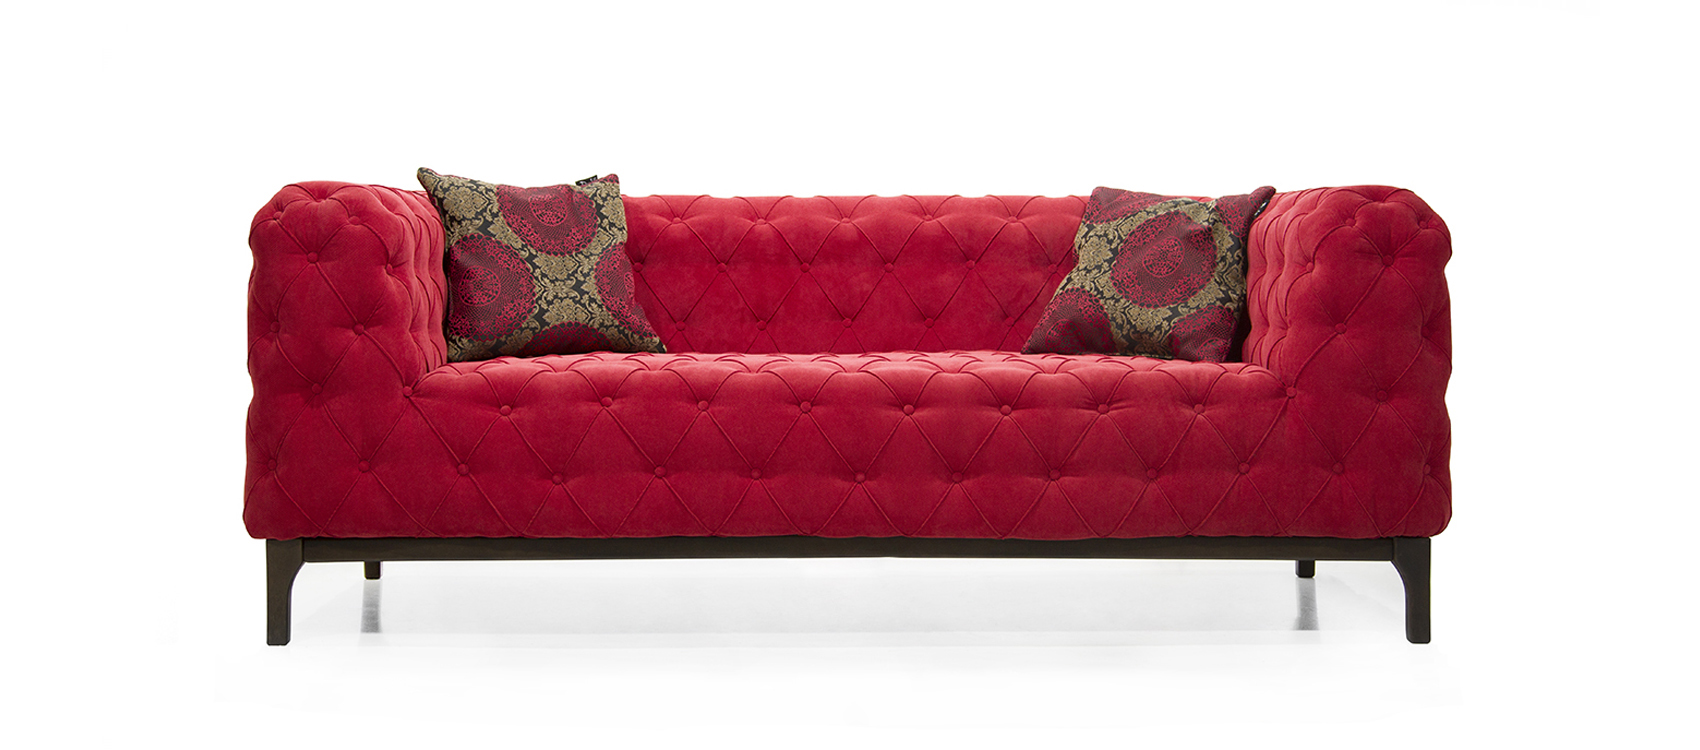 Sofa HARRODS 2 SEATER foto 2